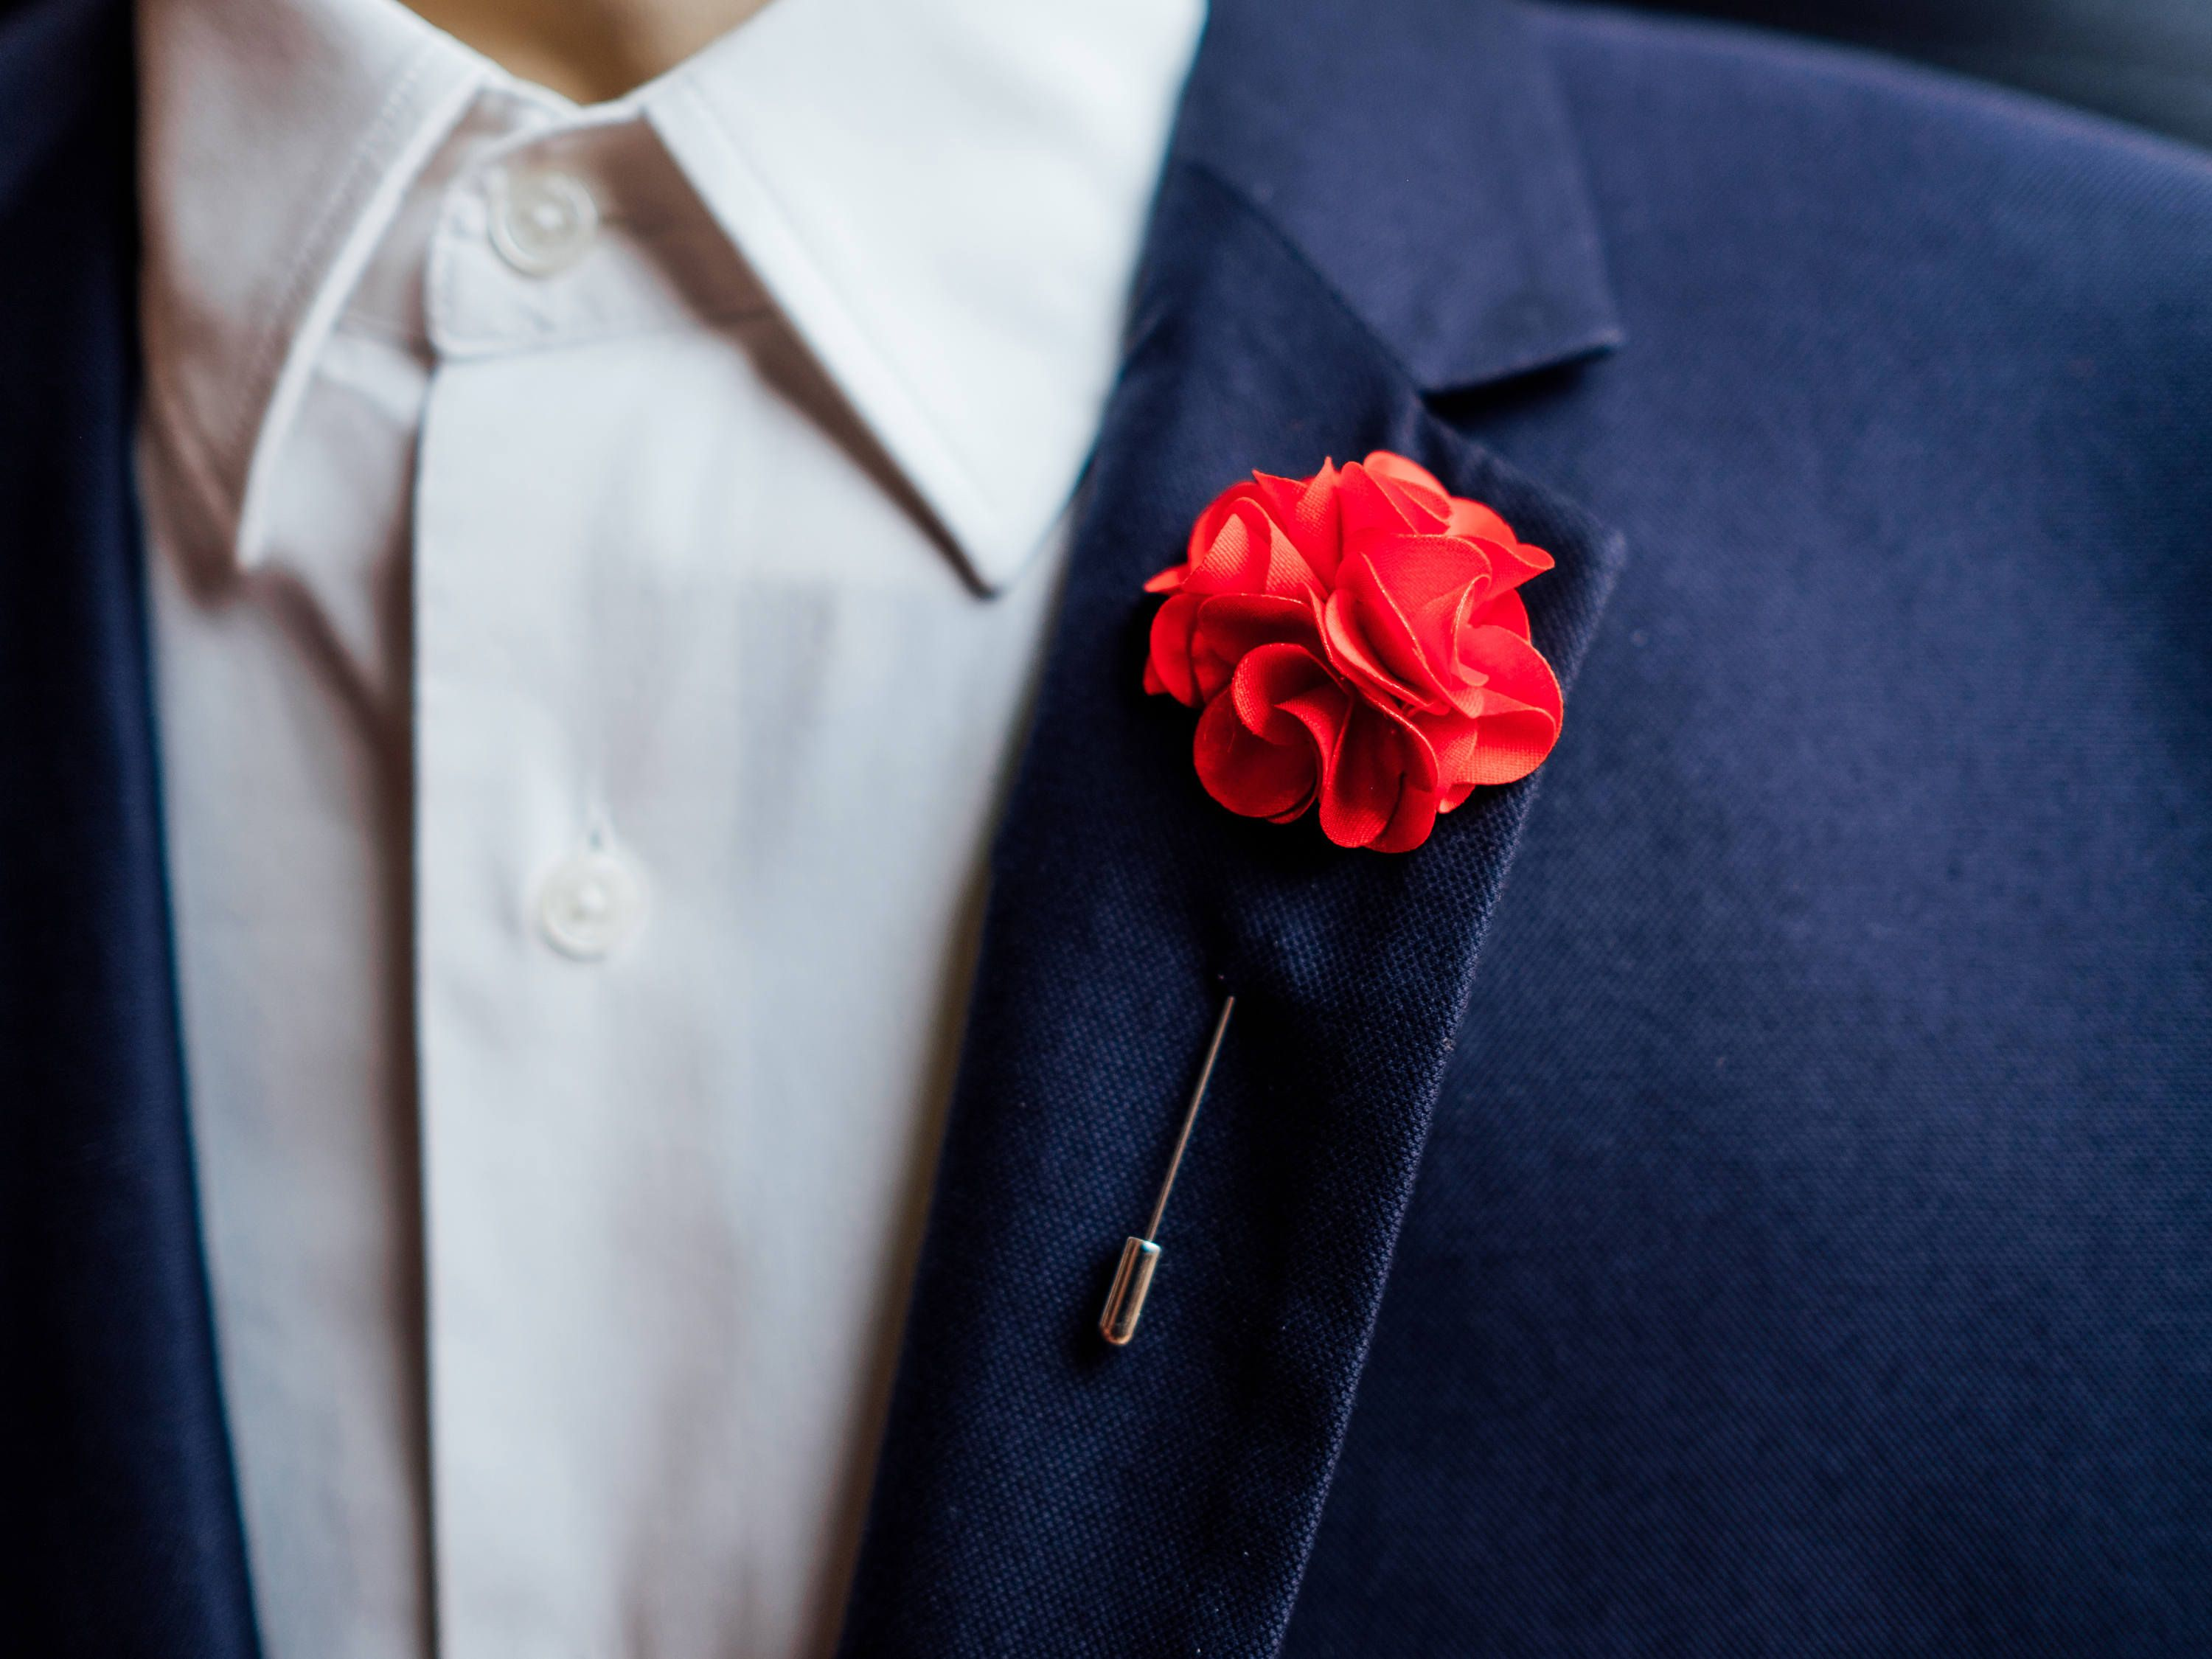 Boutonniere Groom, Rose Pin Lapel Pin Wedding Flowers